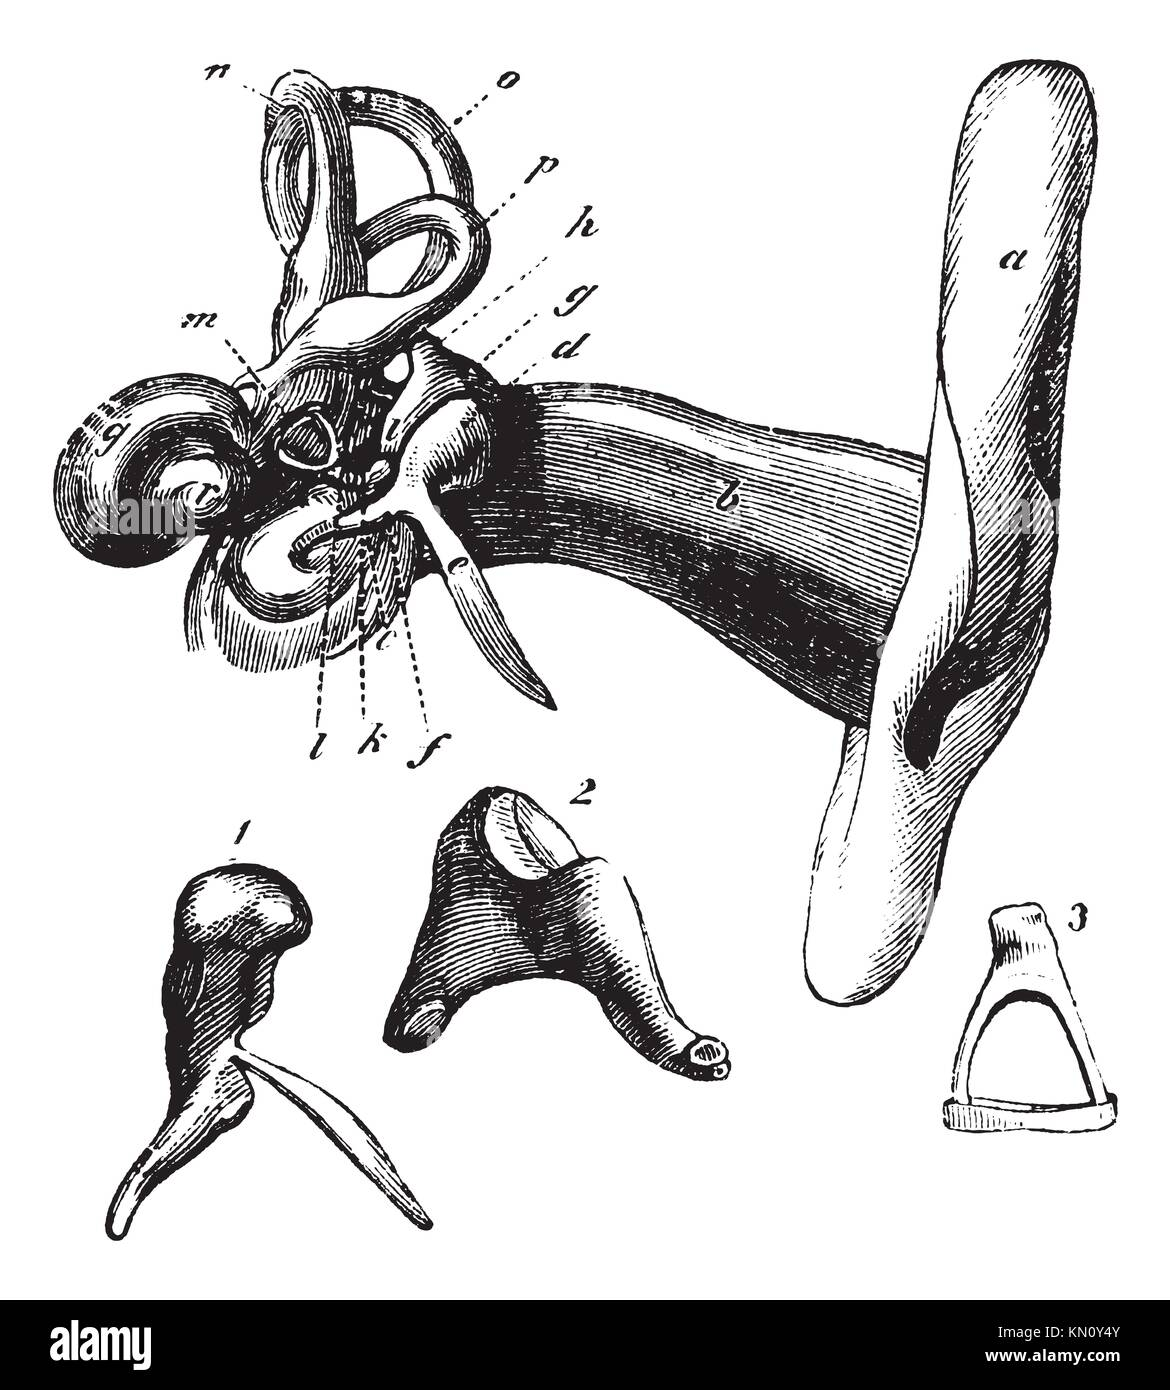 Human Ear Anatomy Or Parts Of The Hearing Aid A Outer Ear B